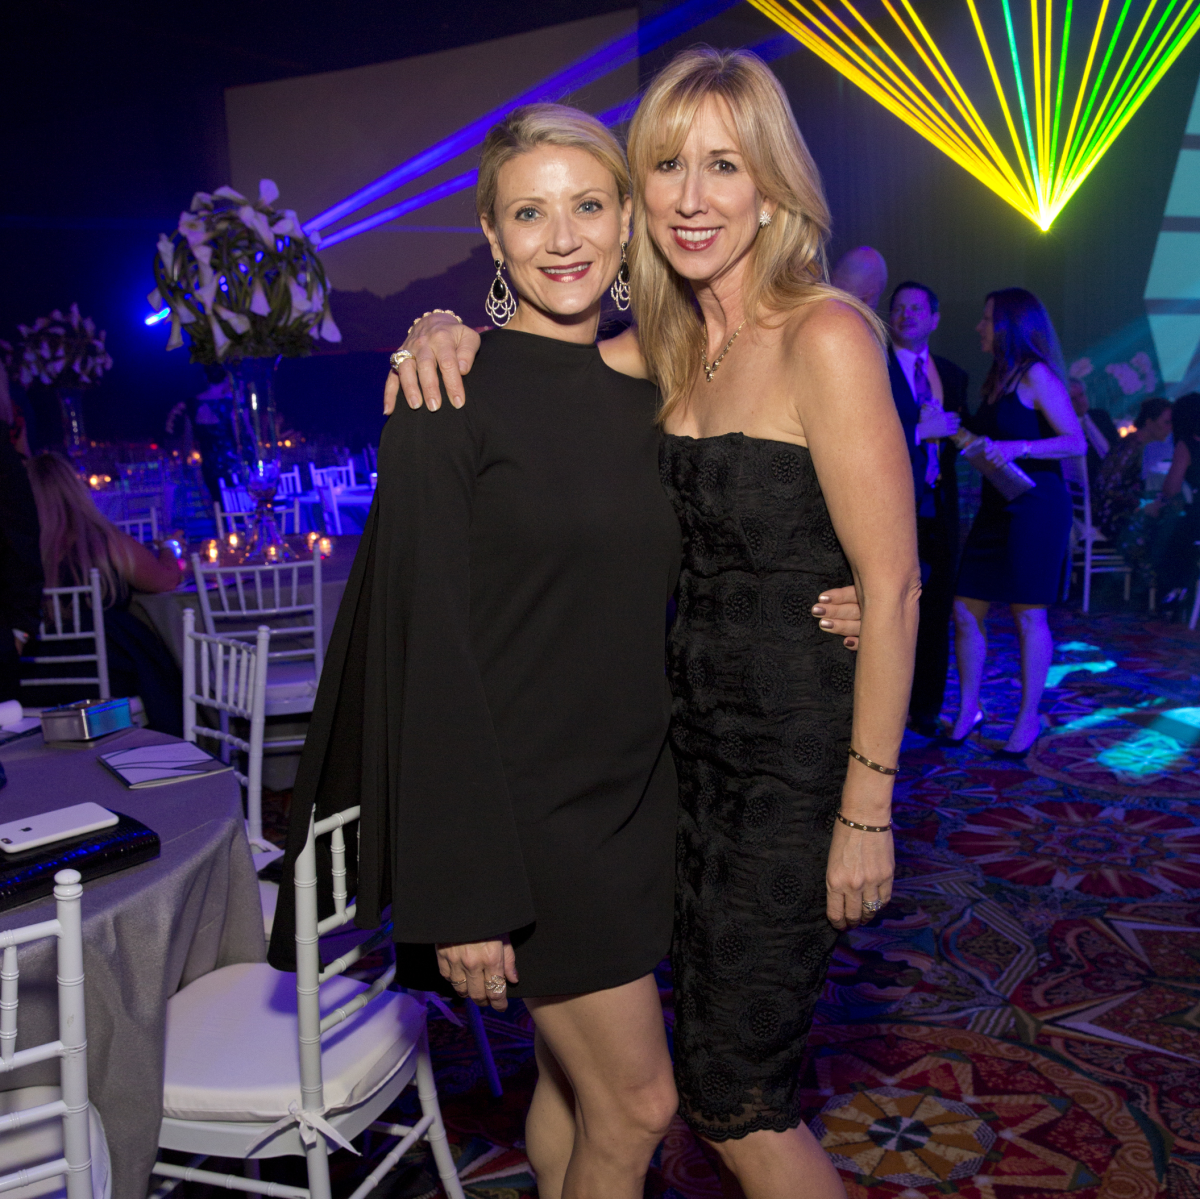 Houston, Methodist Hospital Rendezvous Live Young Gala, November 2017, Stephanie Cockrell, Caroline Finkelstein